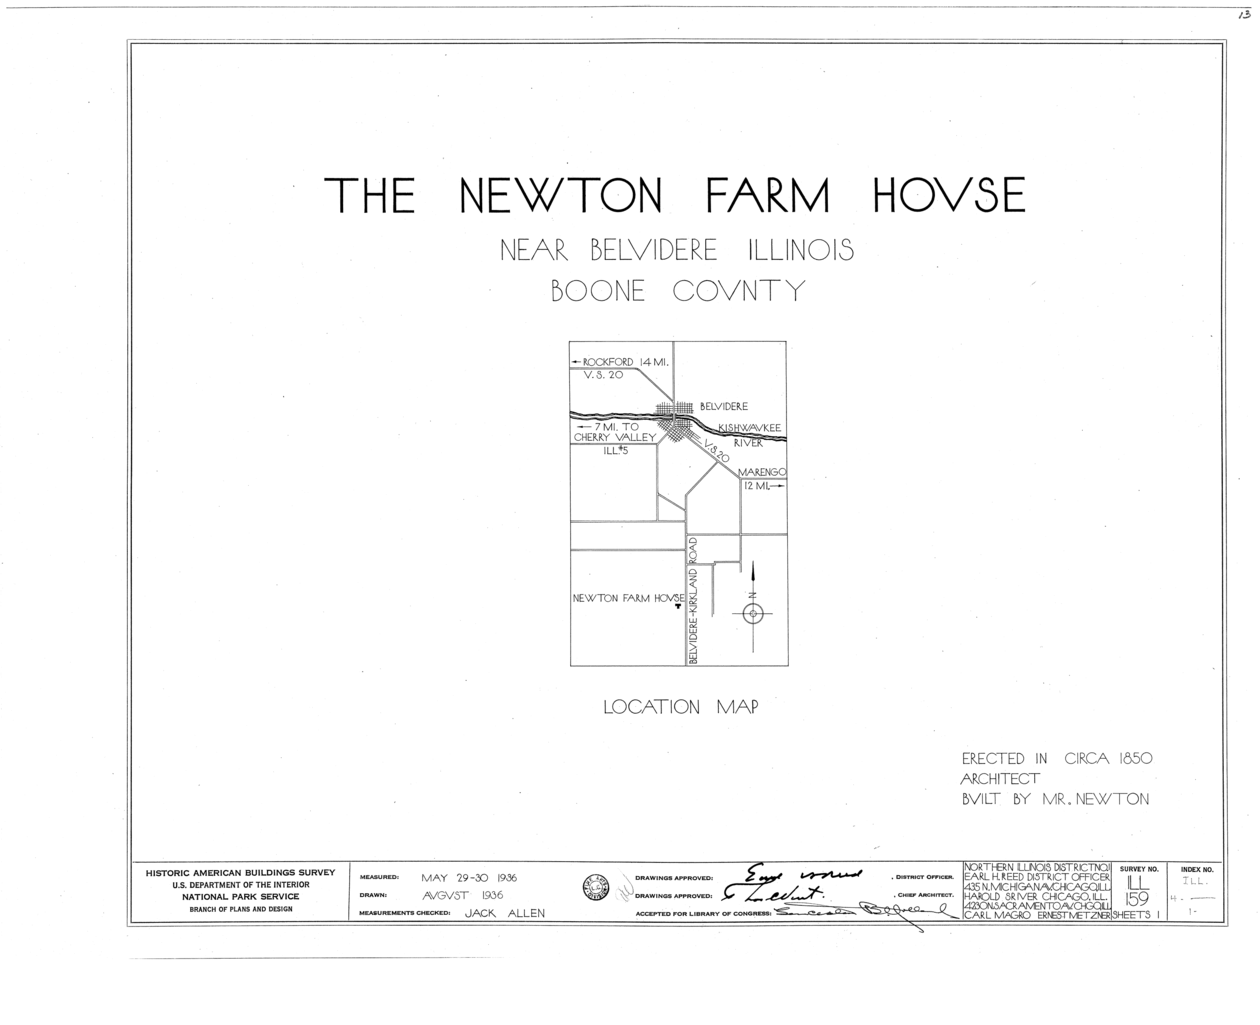 Illinois boone county belvidere - File Newton Farmhouse Belvidere Kirkland Road Belvidere Boone County Il Habs Ill 4 1 Sheet 0 Of 1 Png